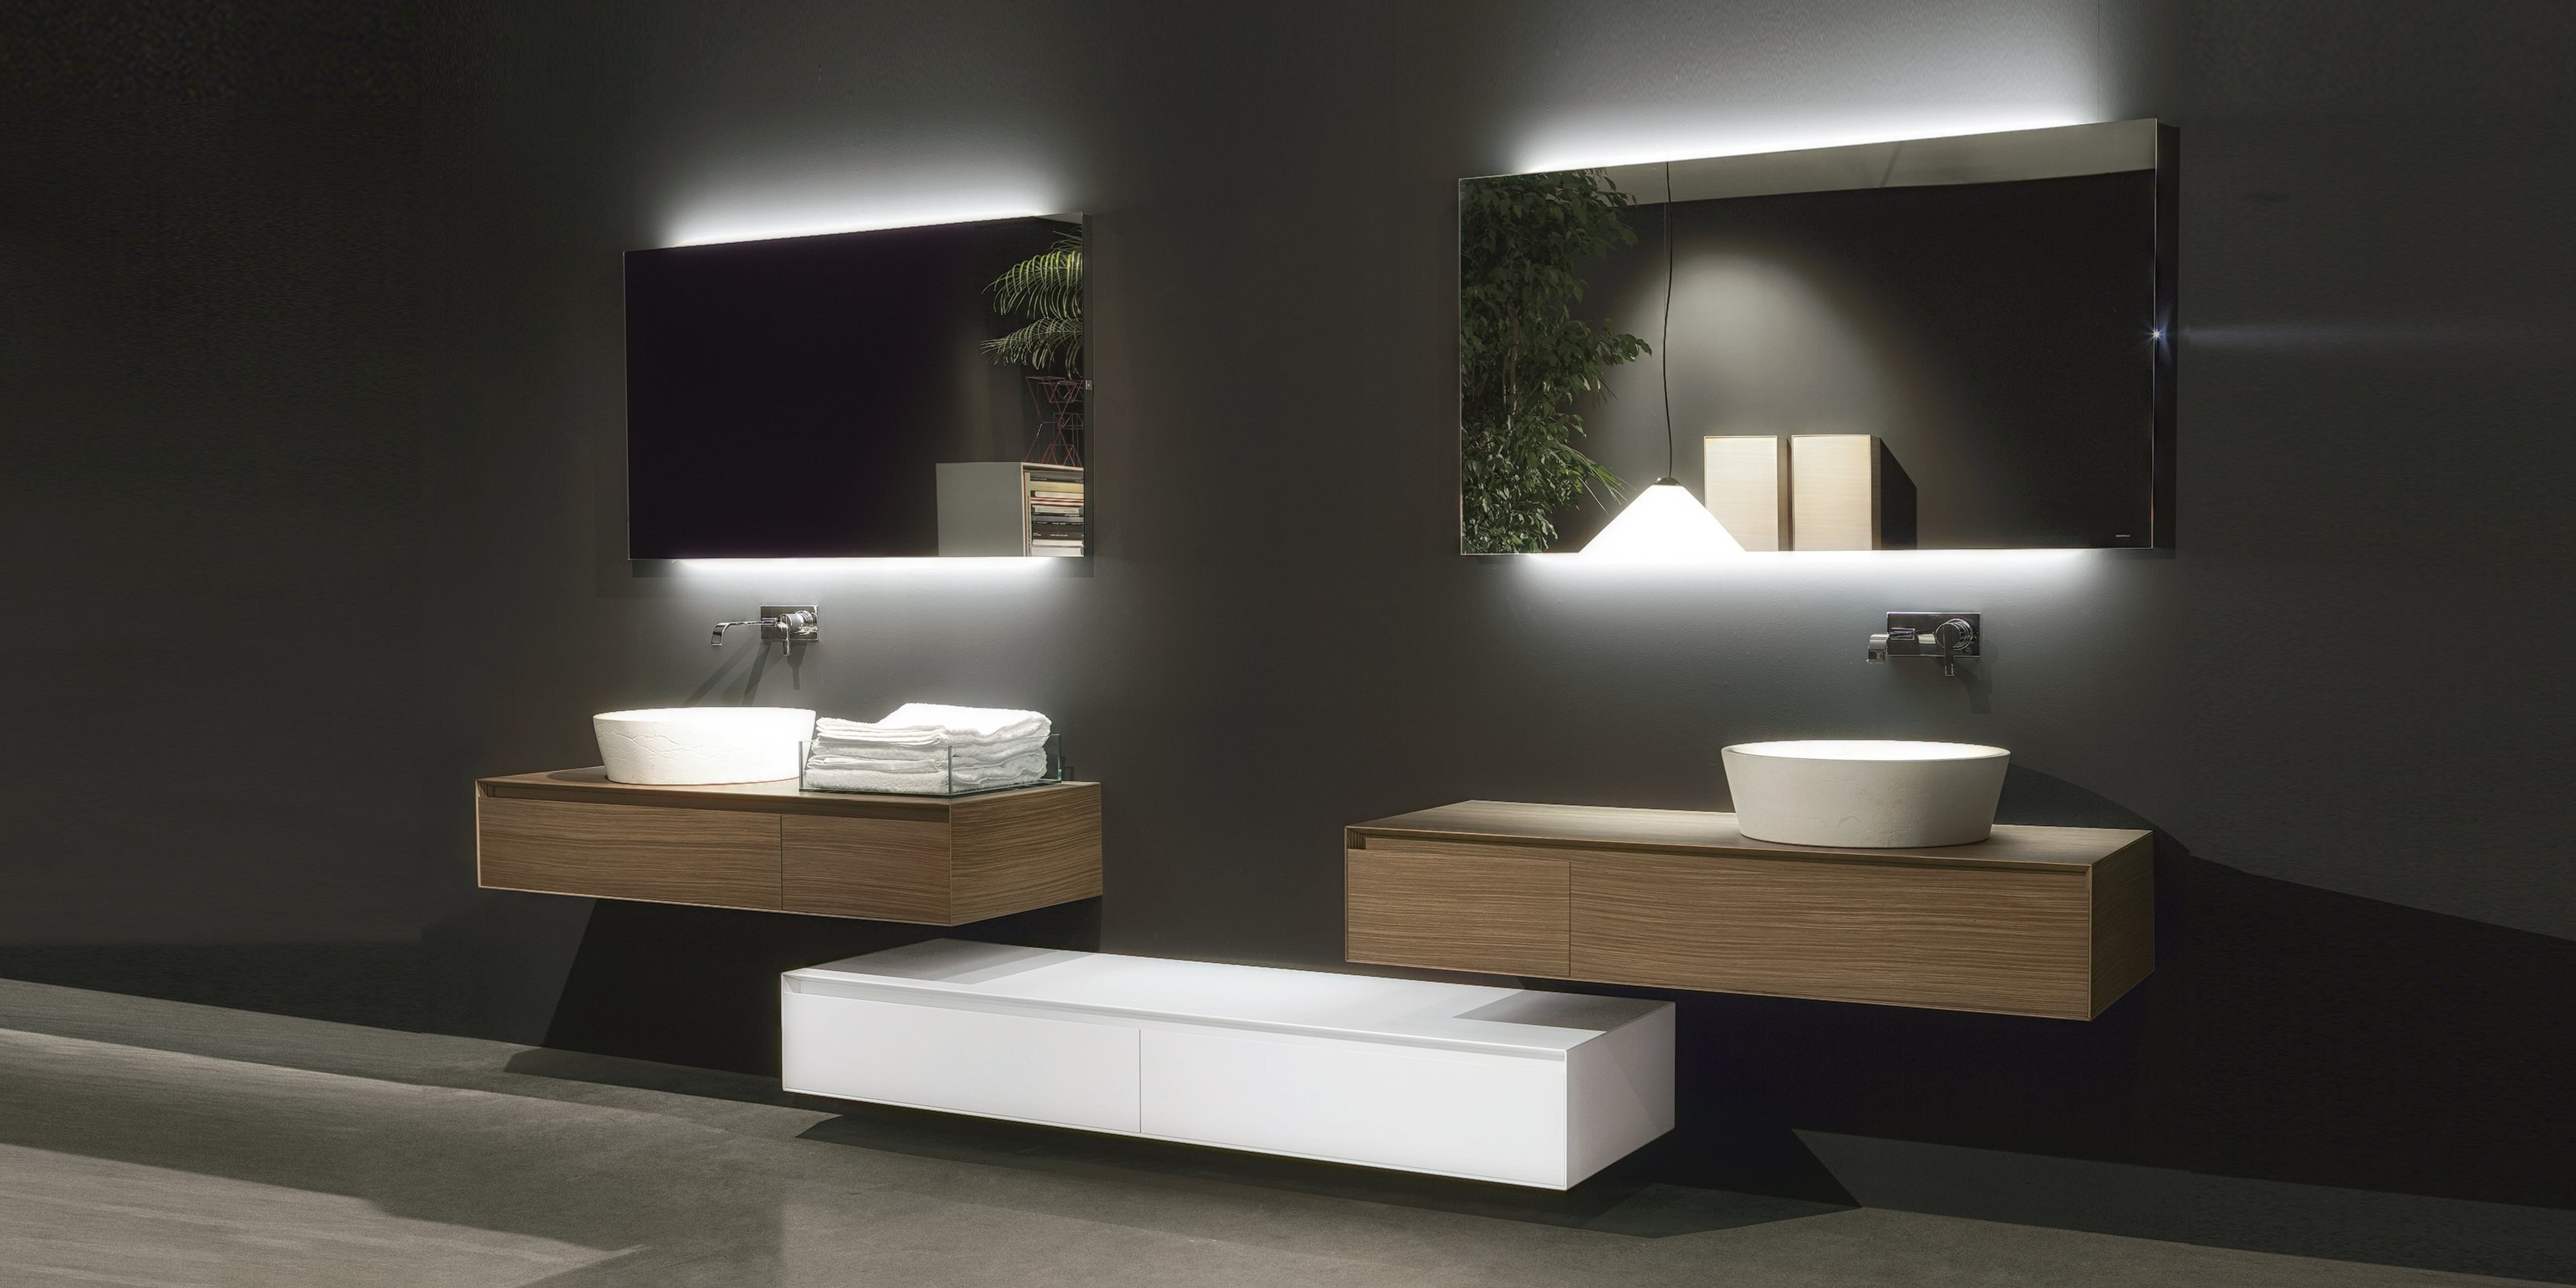 Panta rei by antonio lupi design for Salle de bain complete design